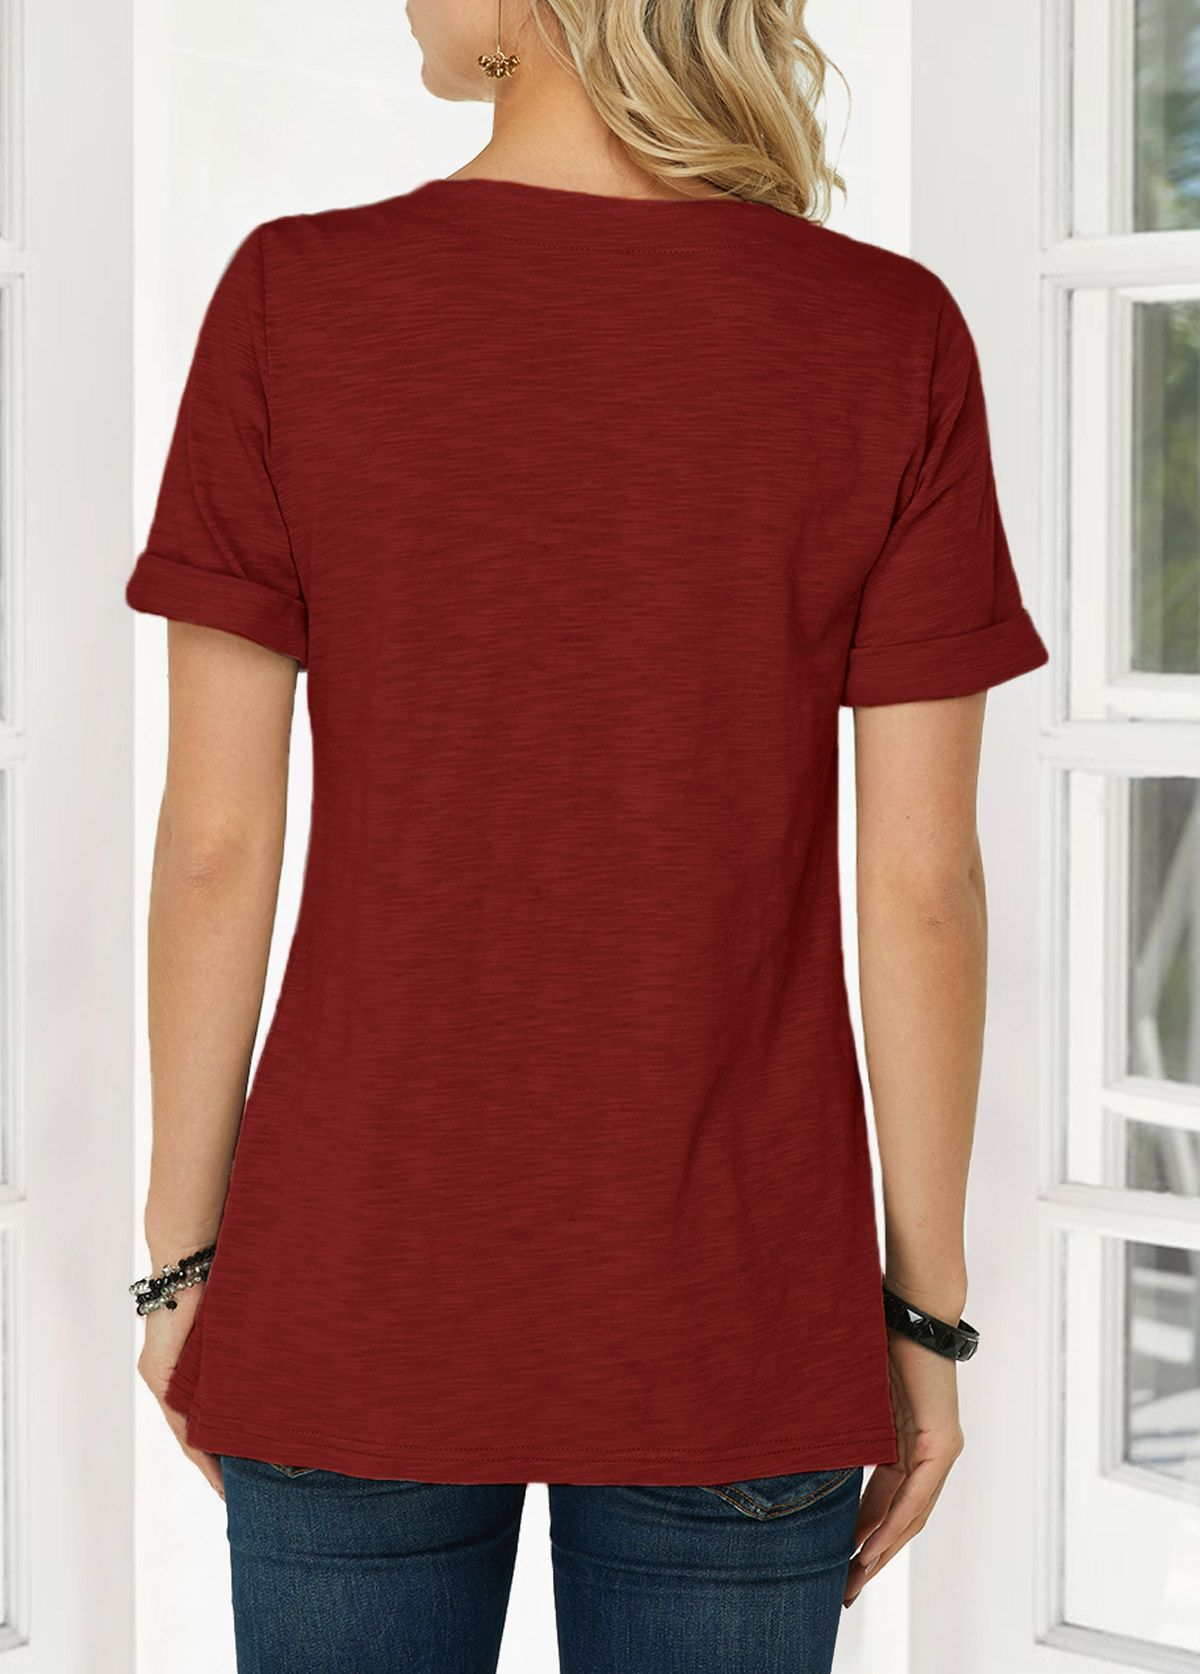 Wine Red Button Detail Asymmetric Hem T Shirt Rotita Com Usd 26 83 Red Tshirt Ladies Tops Fashion Womens Trendy Tops